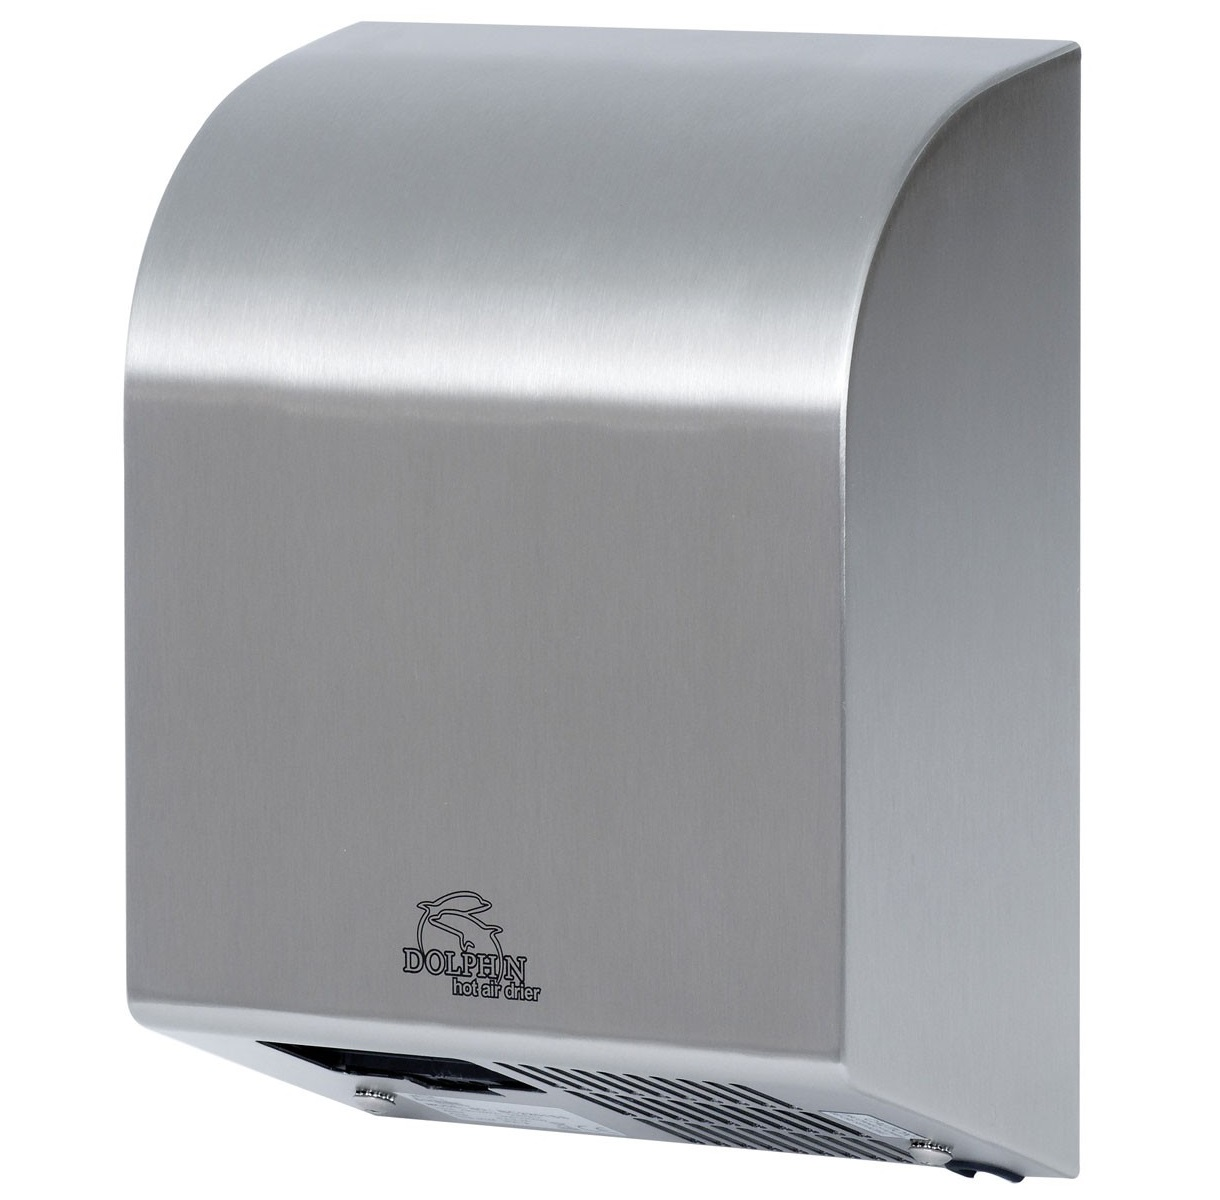 Hot Air Hand Dryer - Stainless Steel H326 x W257 x D120mm